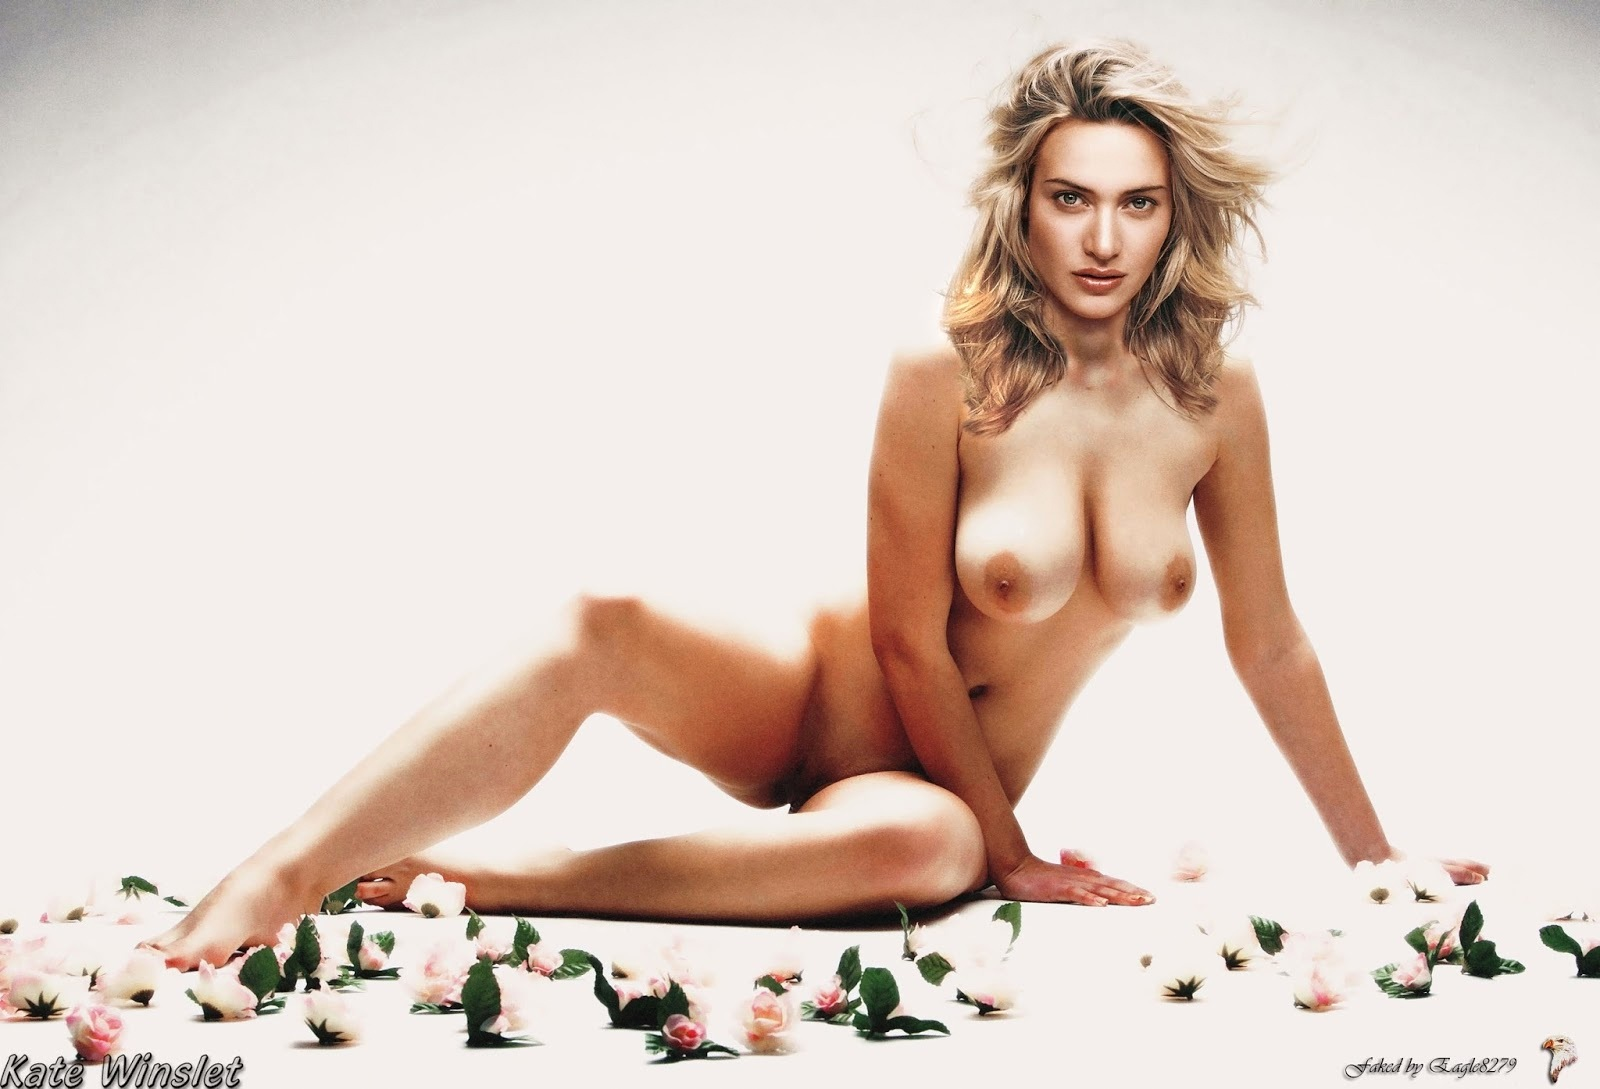 Katewinslet nude pics, naked college vagina